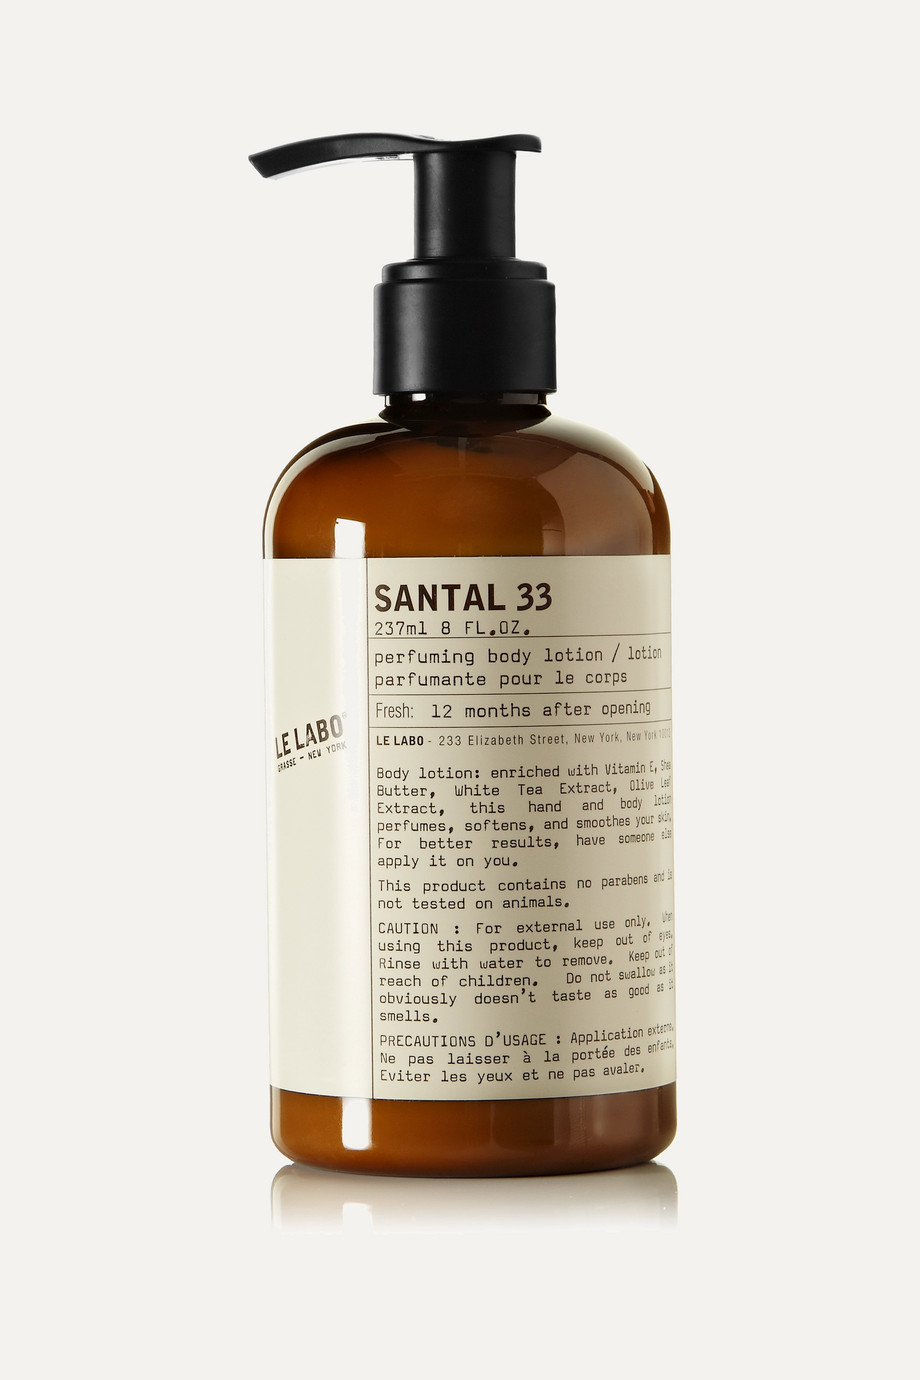 Le Labo Santal 33 Body Lotion, 237ml